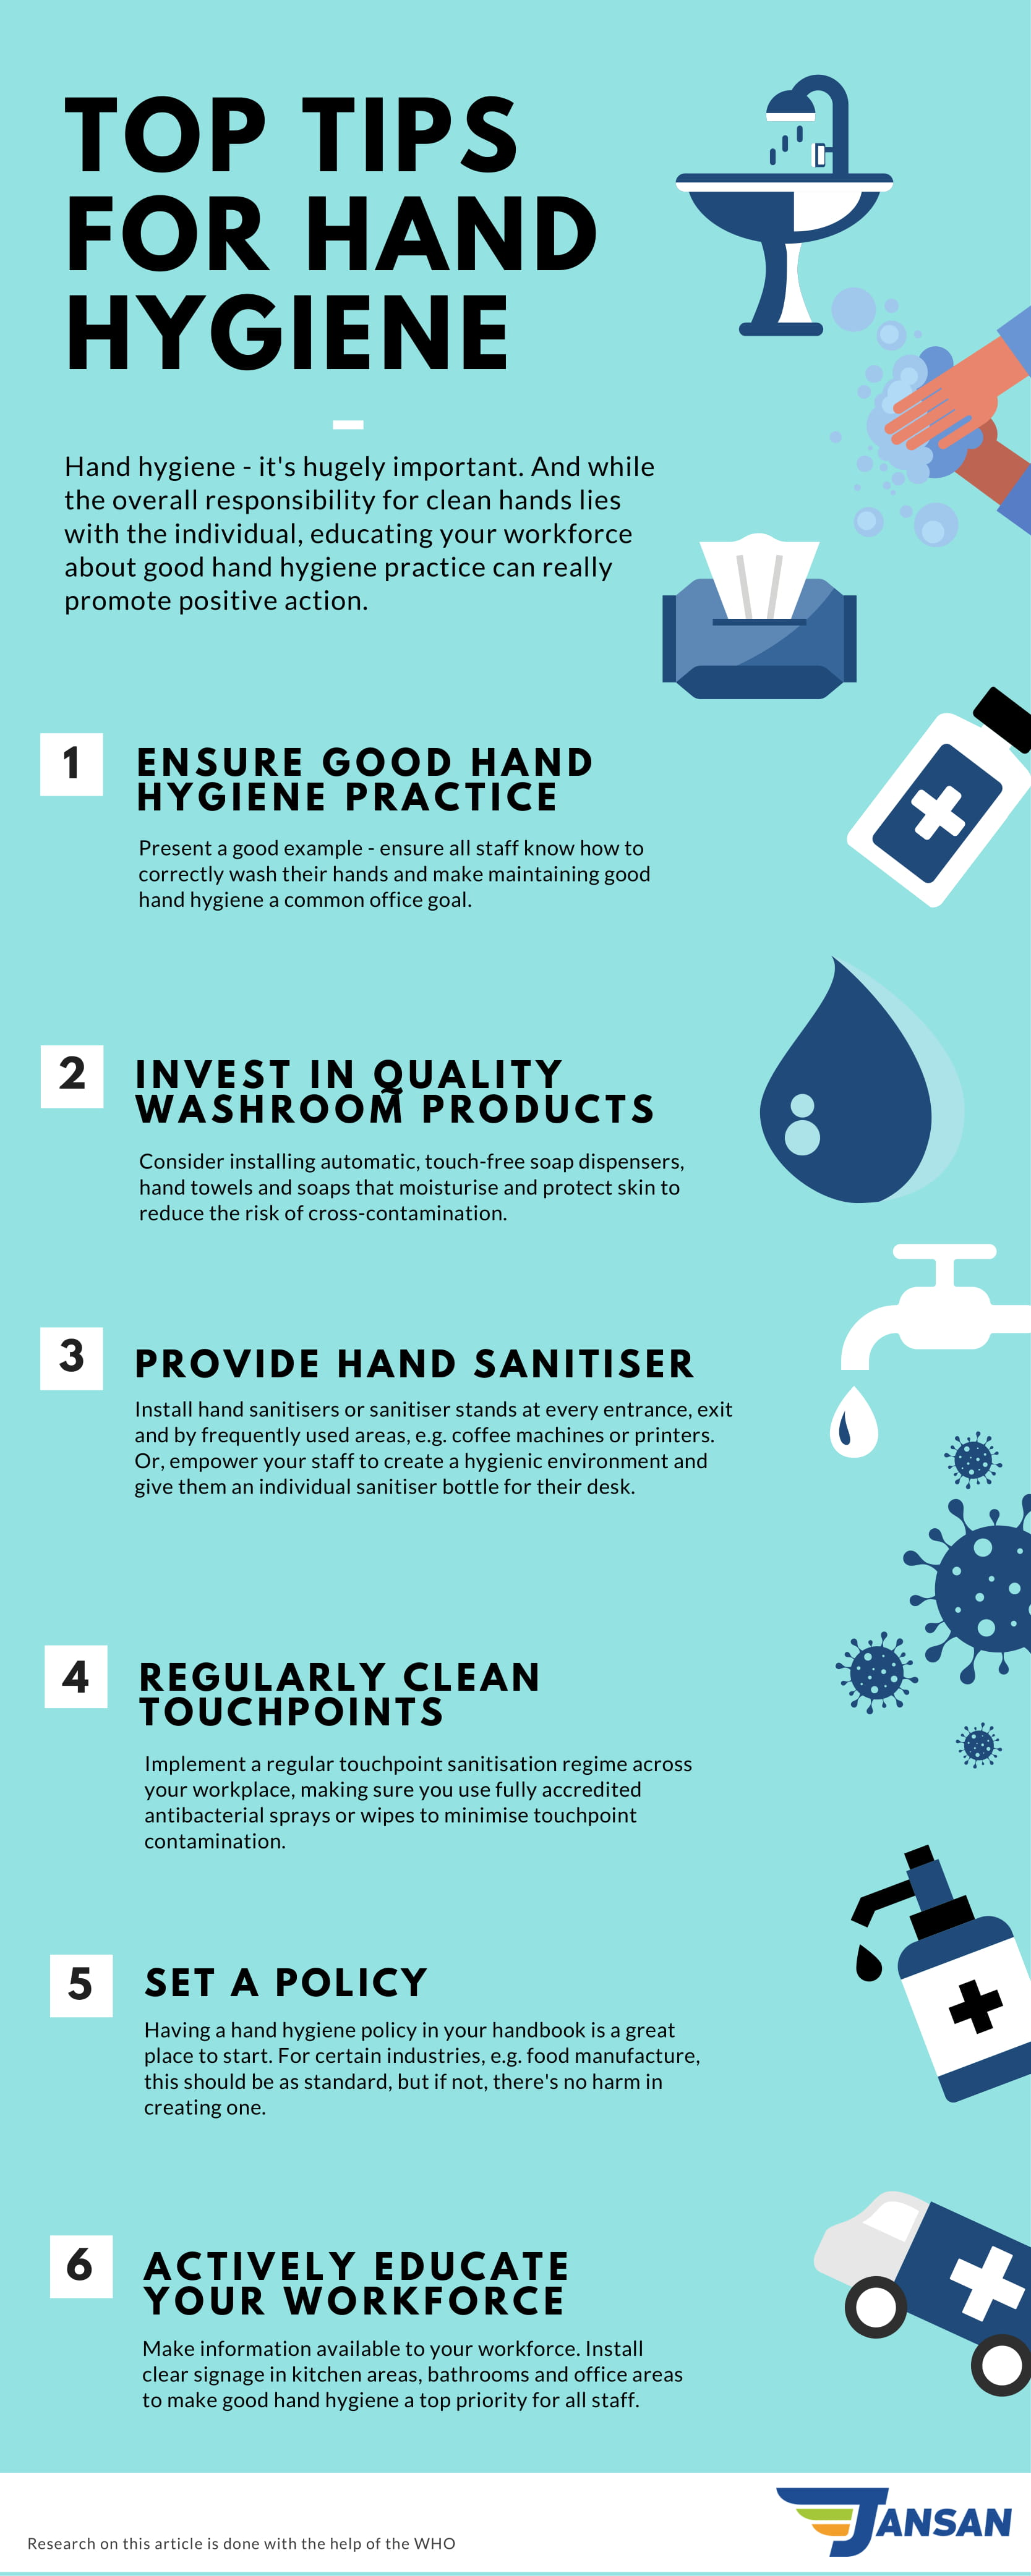 Top tips for hand hygiene in the workplace infographic